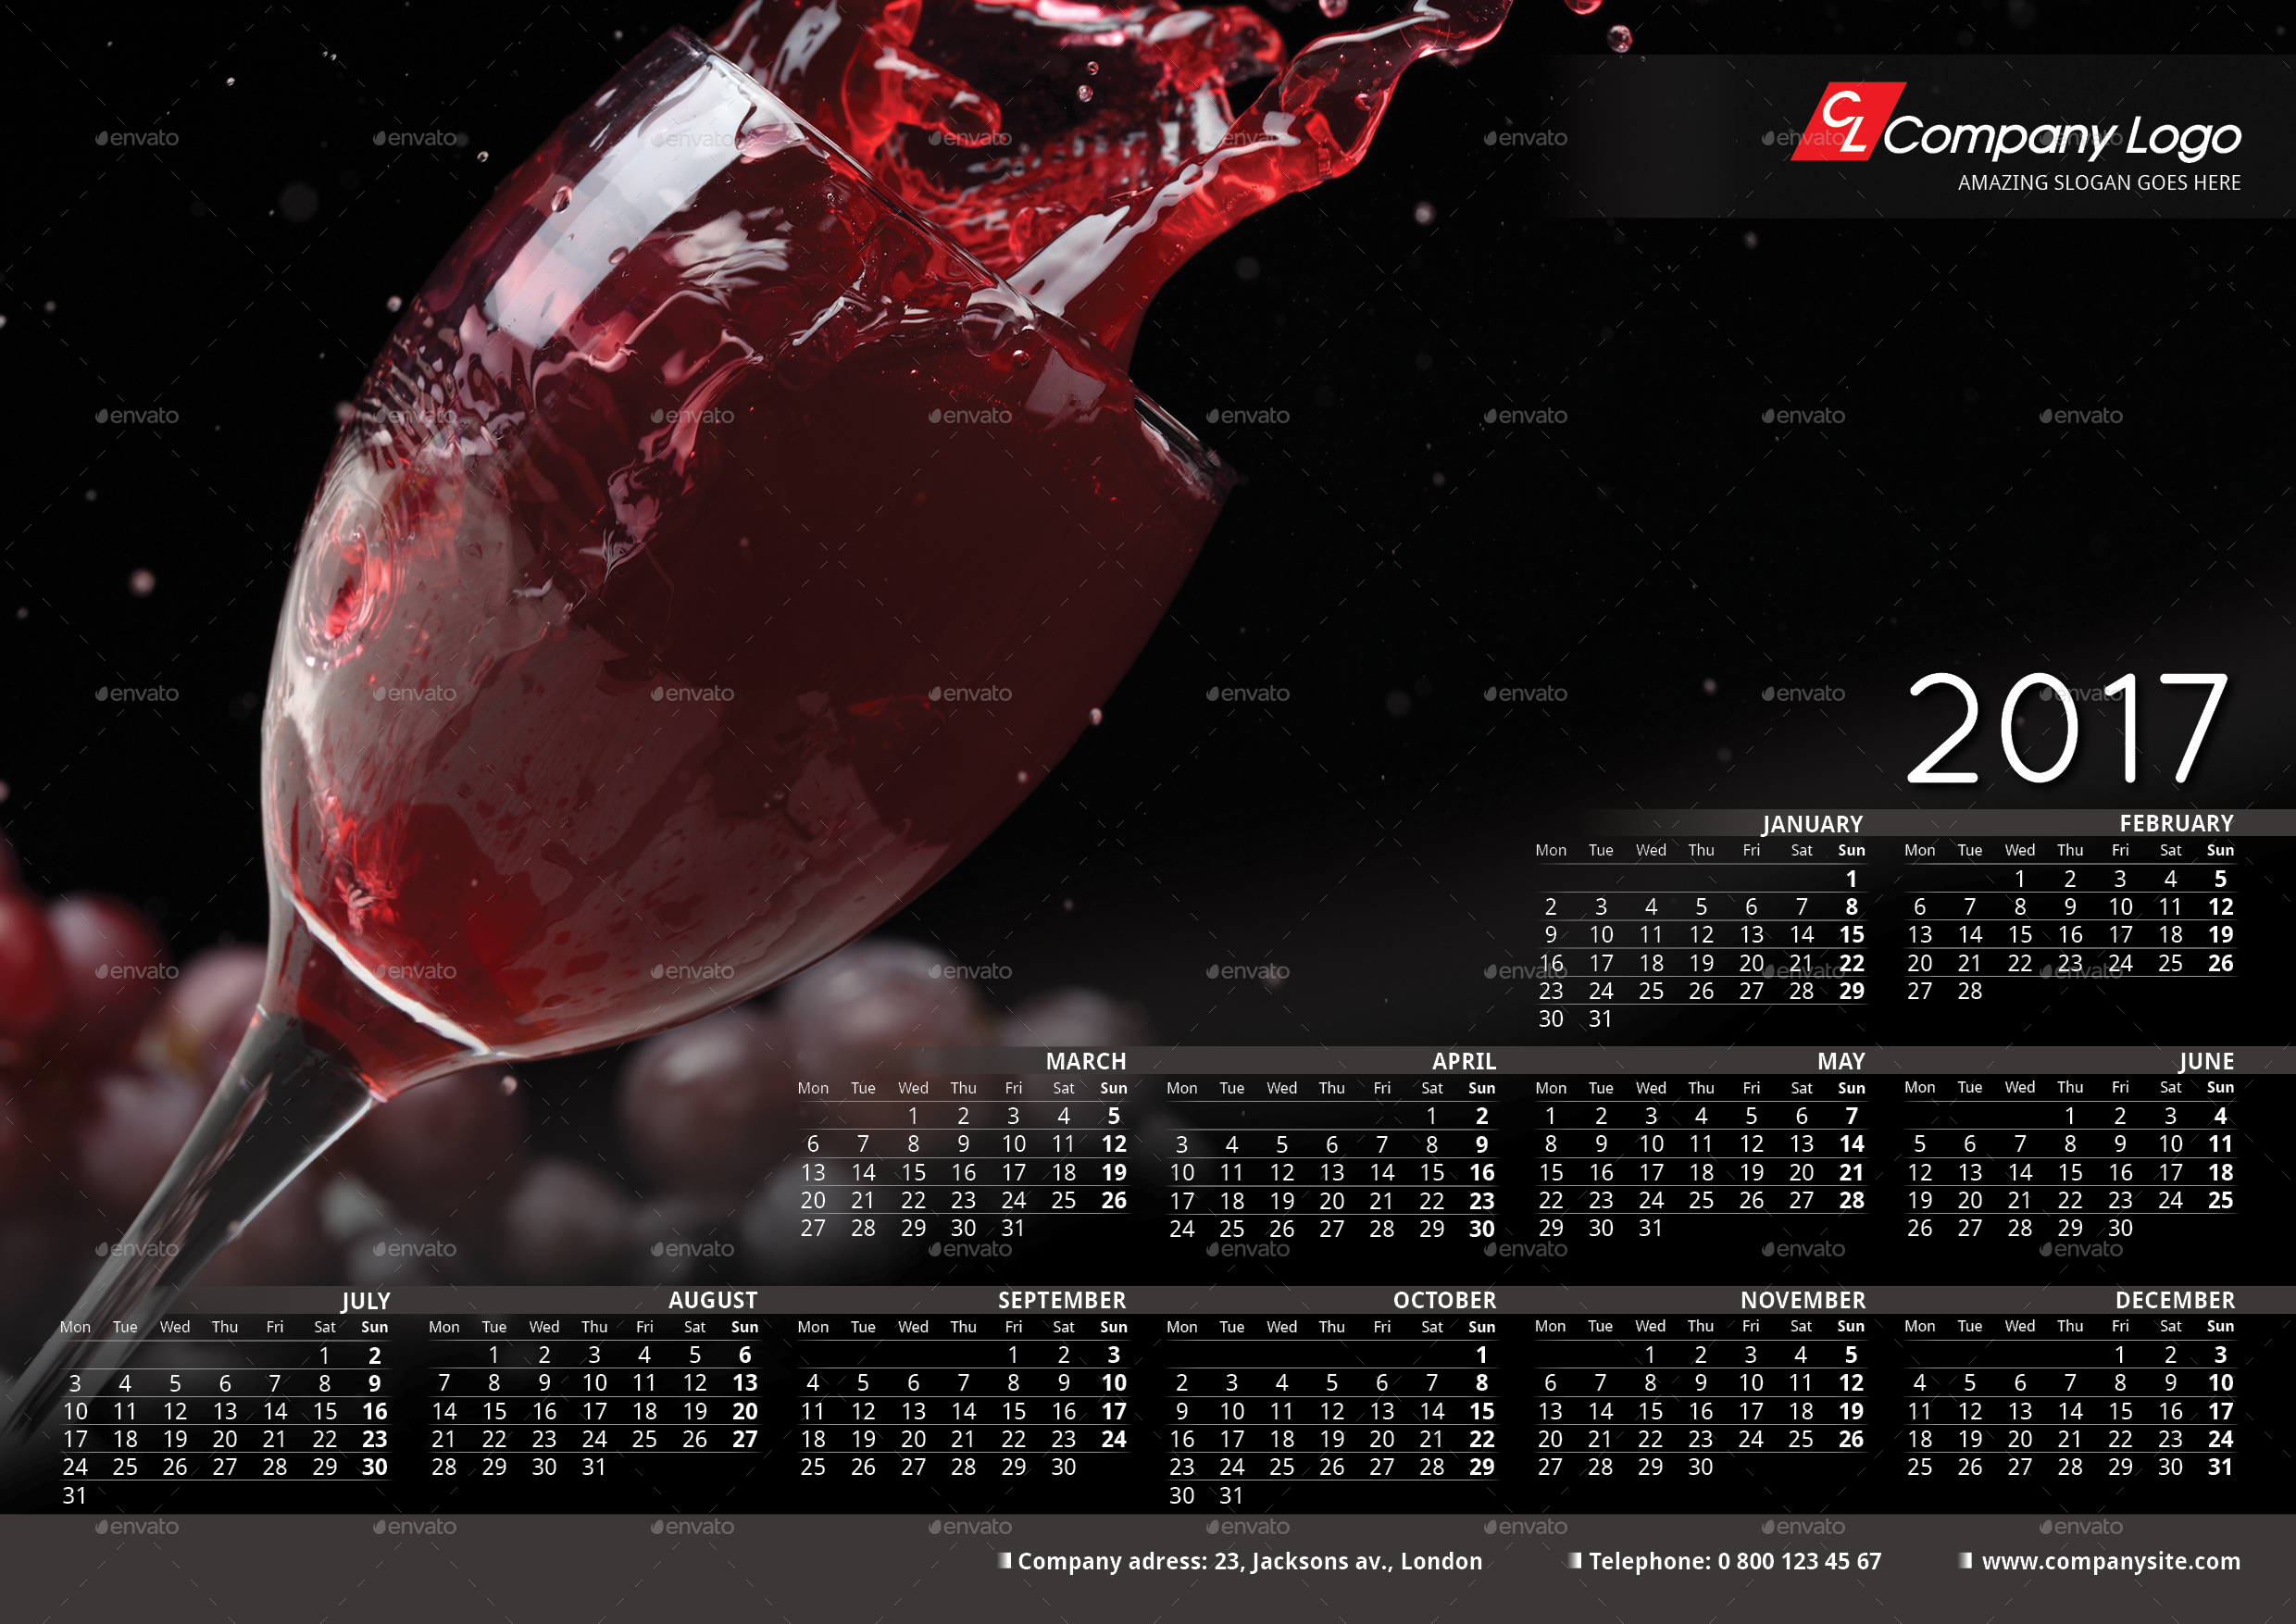 Download 2017 calendar psd